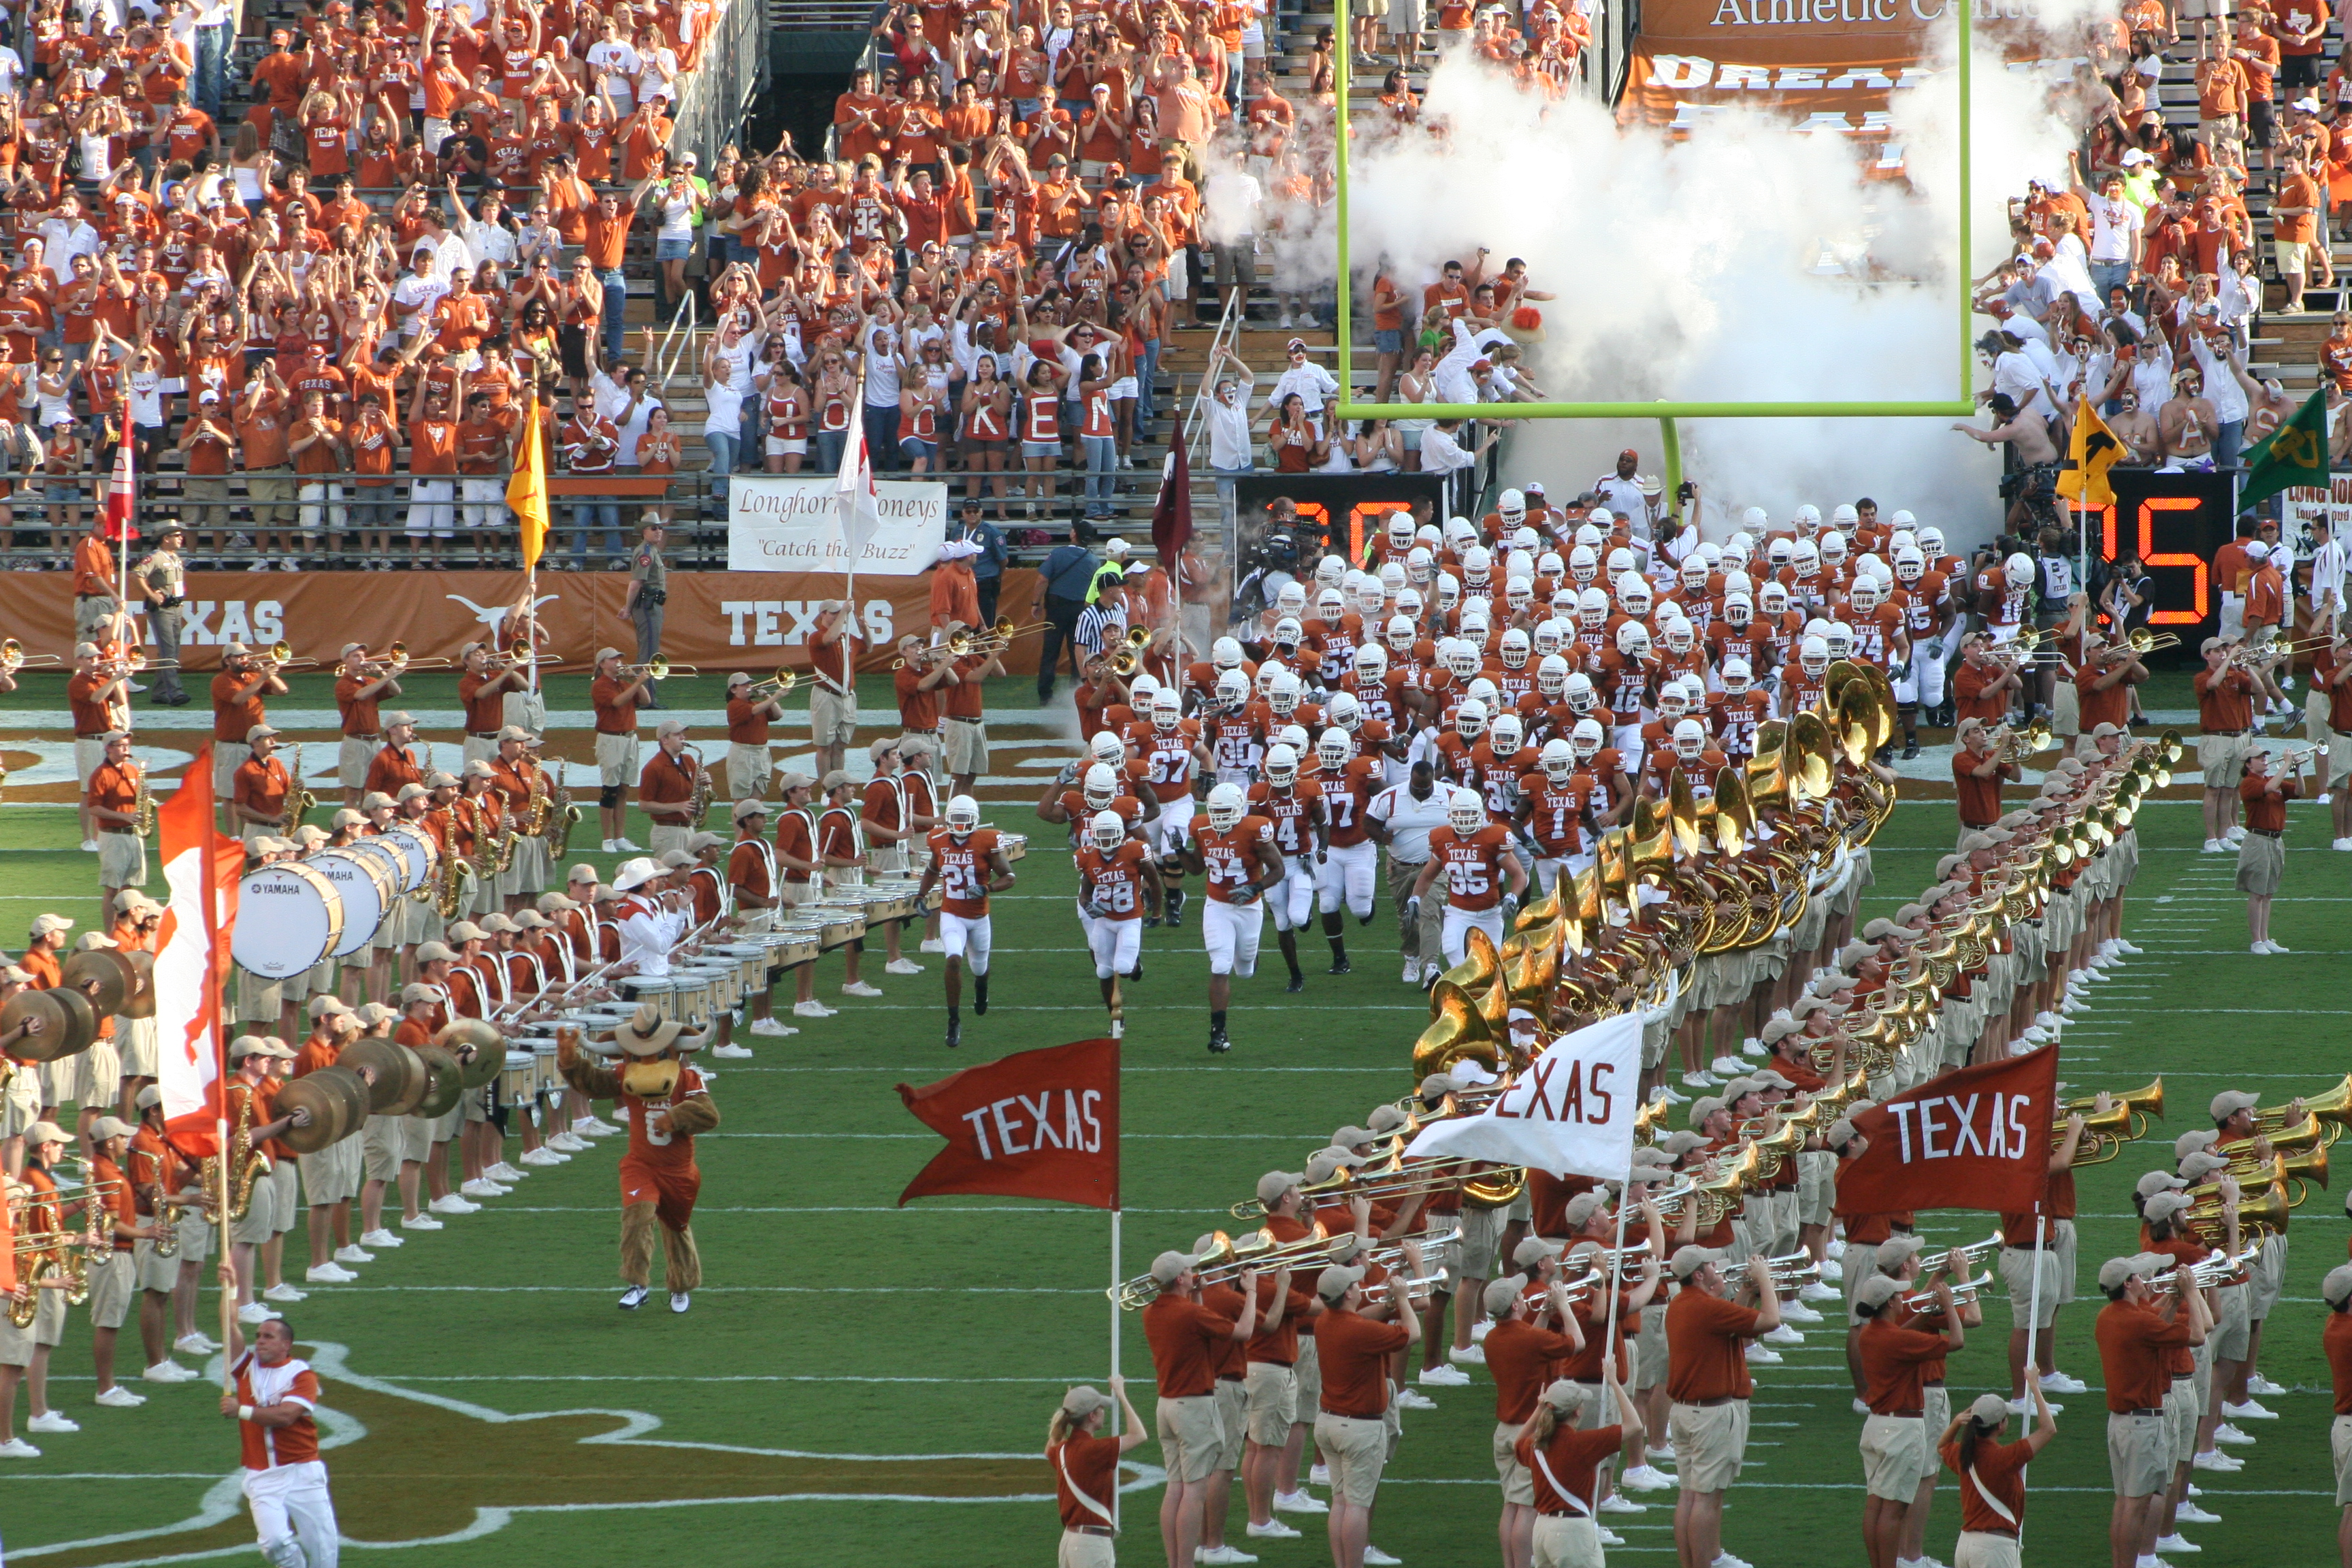 Texas Longhorns football